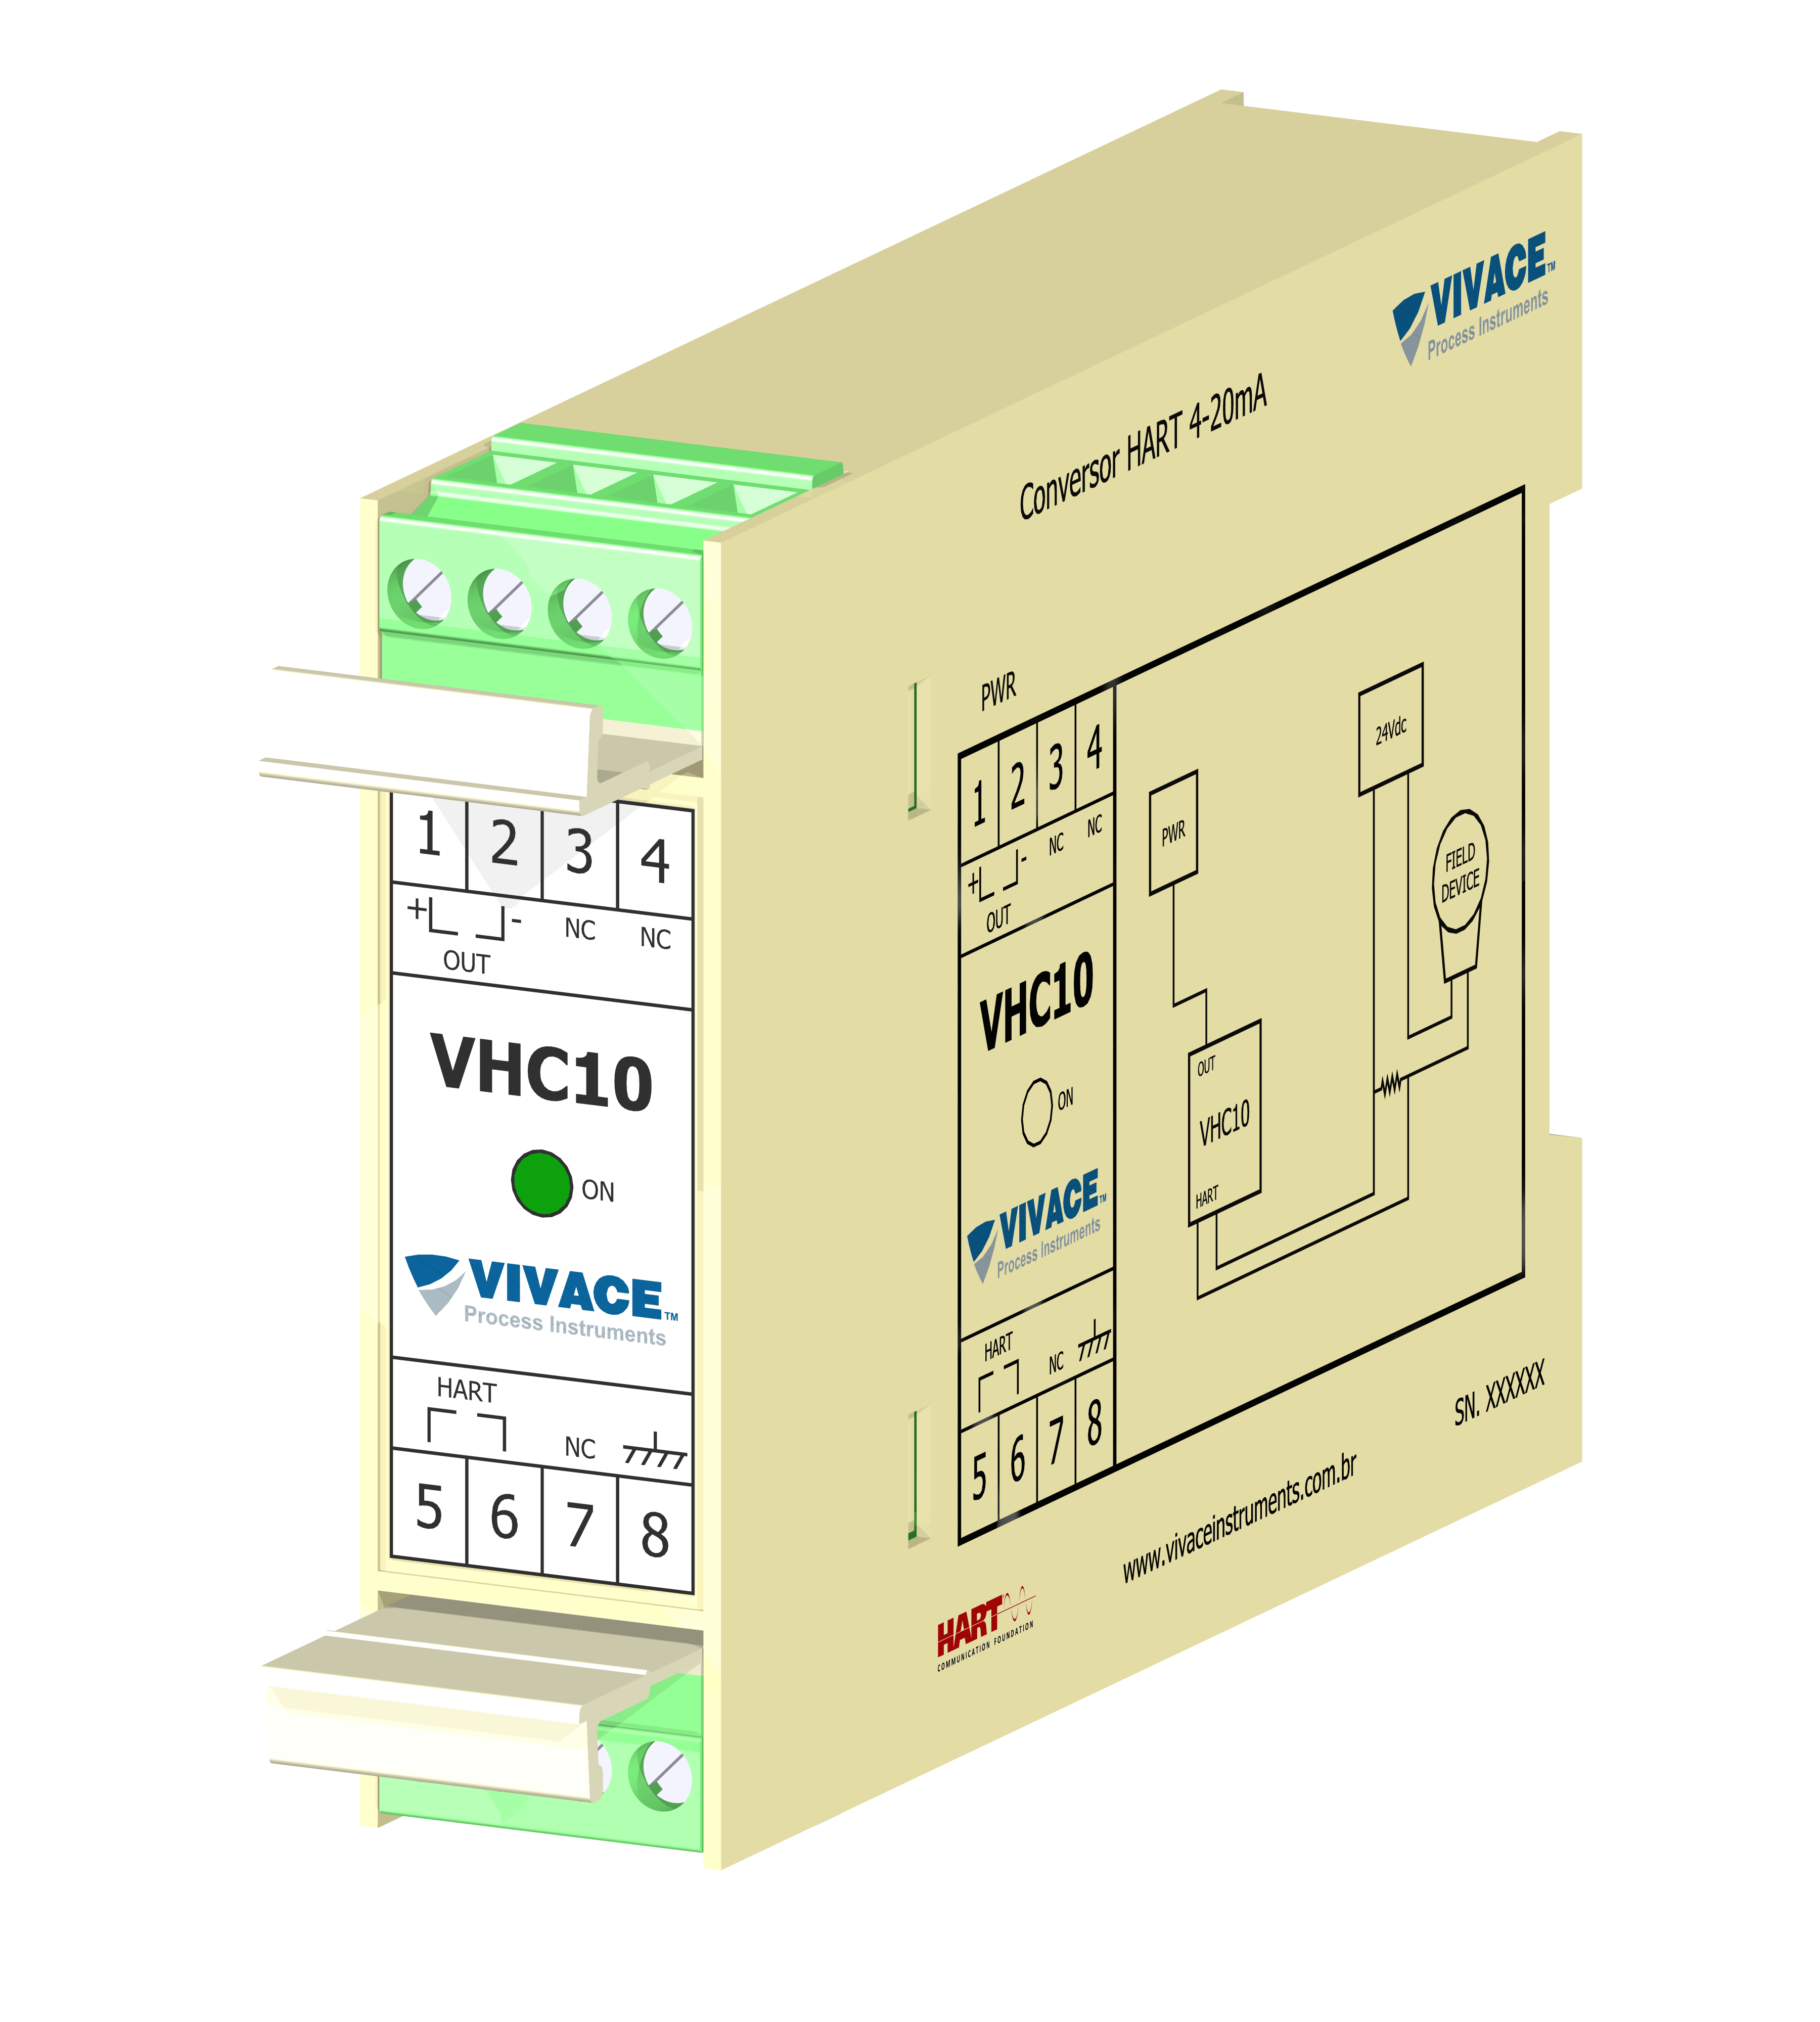 VHC10-P - Conversor Painel HART® para 4-20 mA